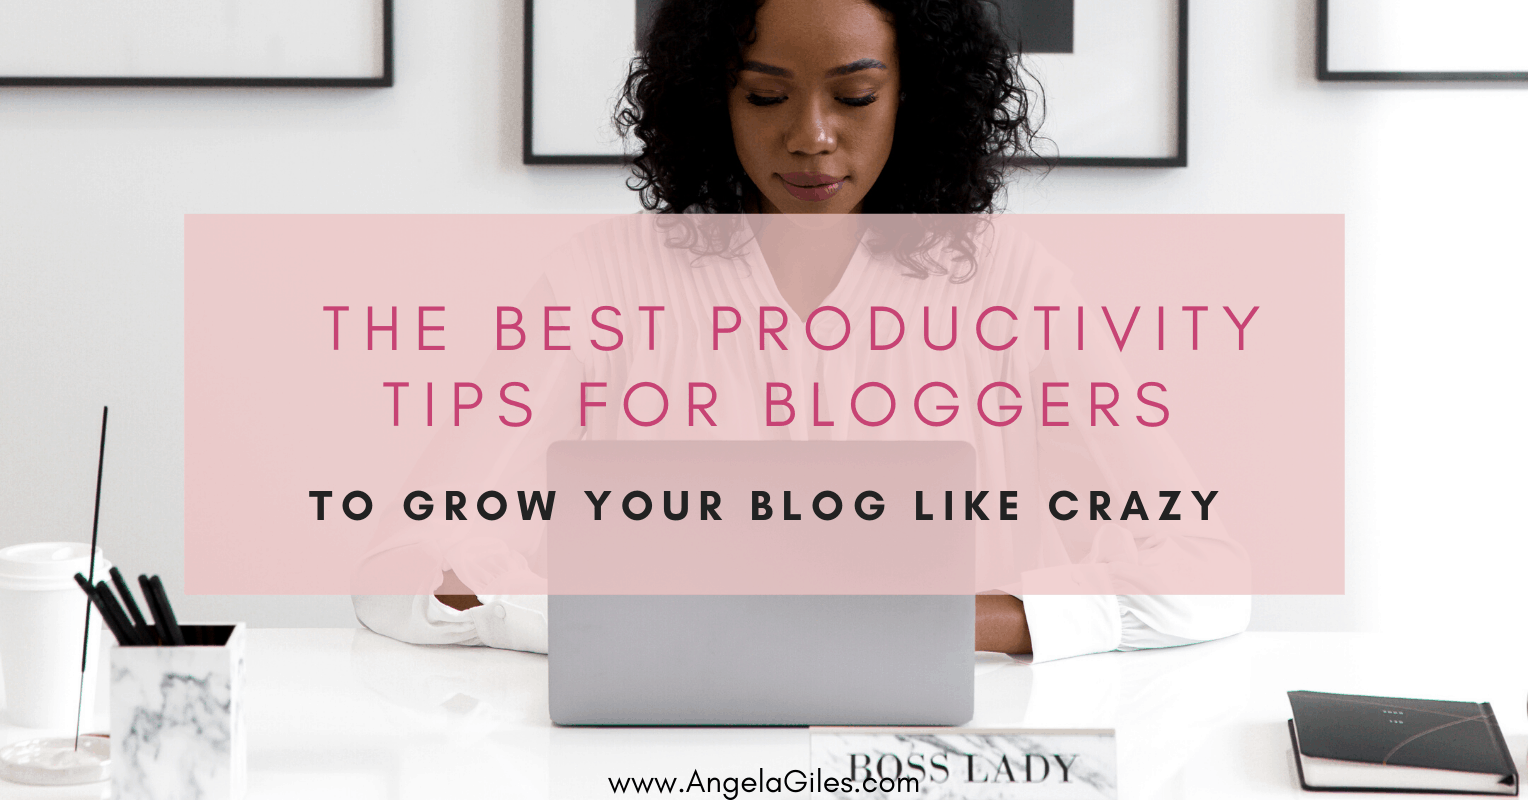 The Best Productivity Tips for Bloggers